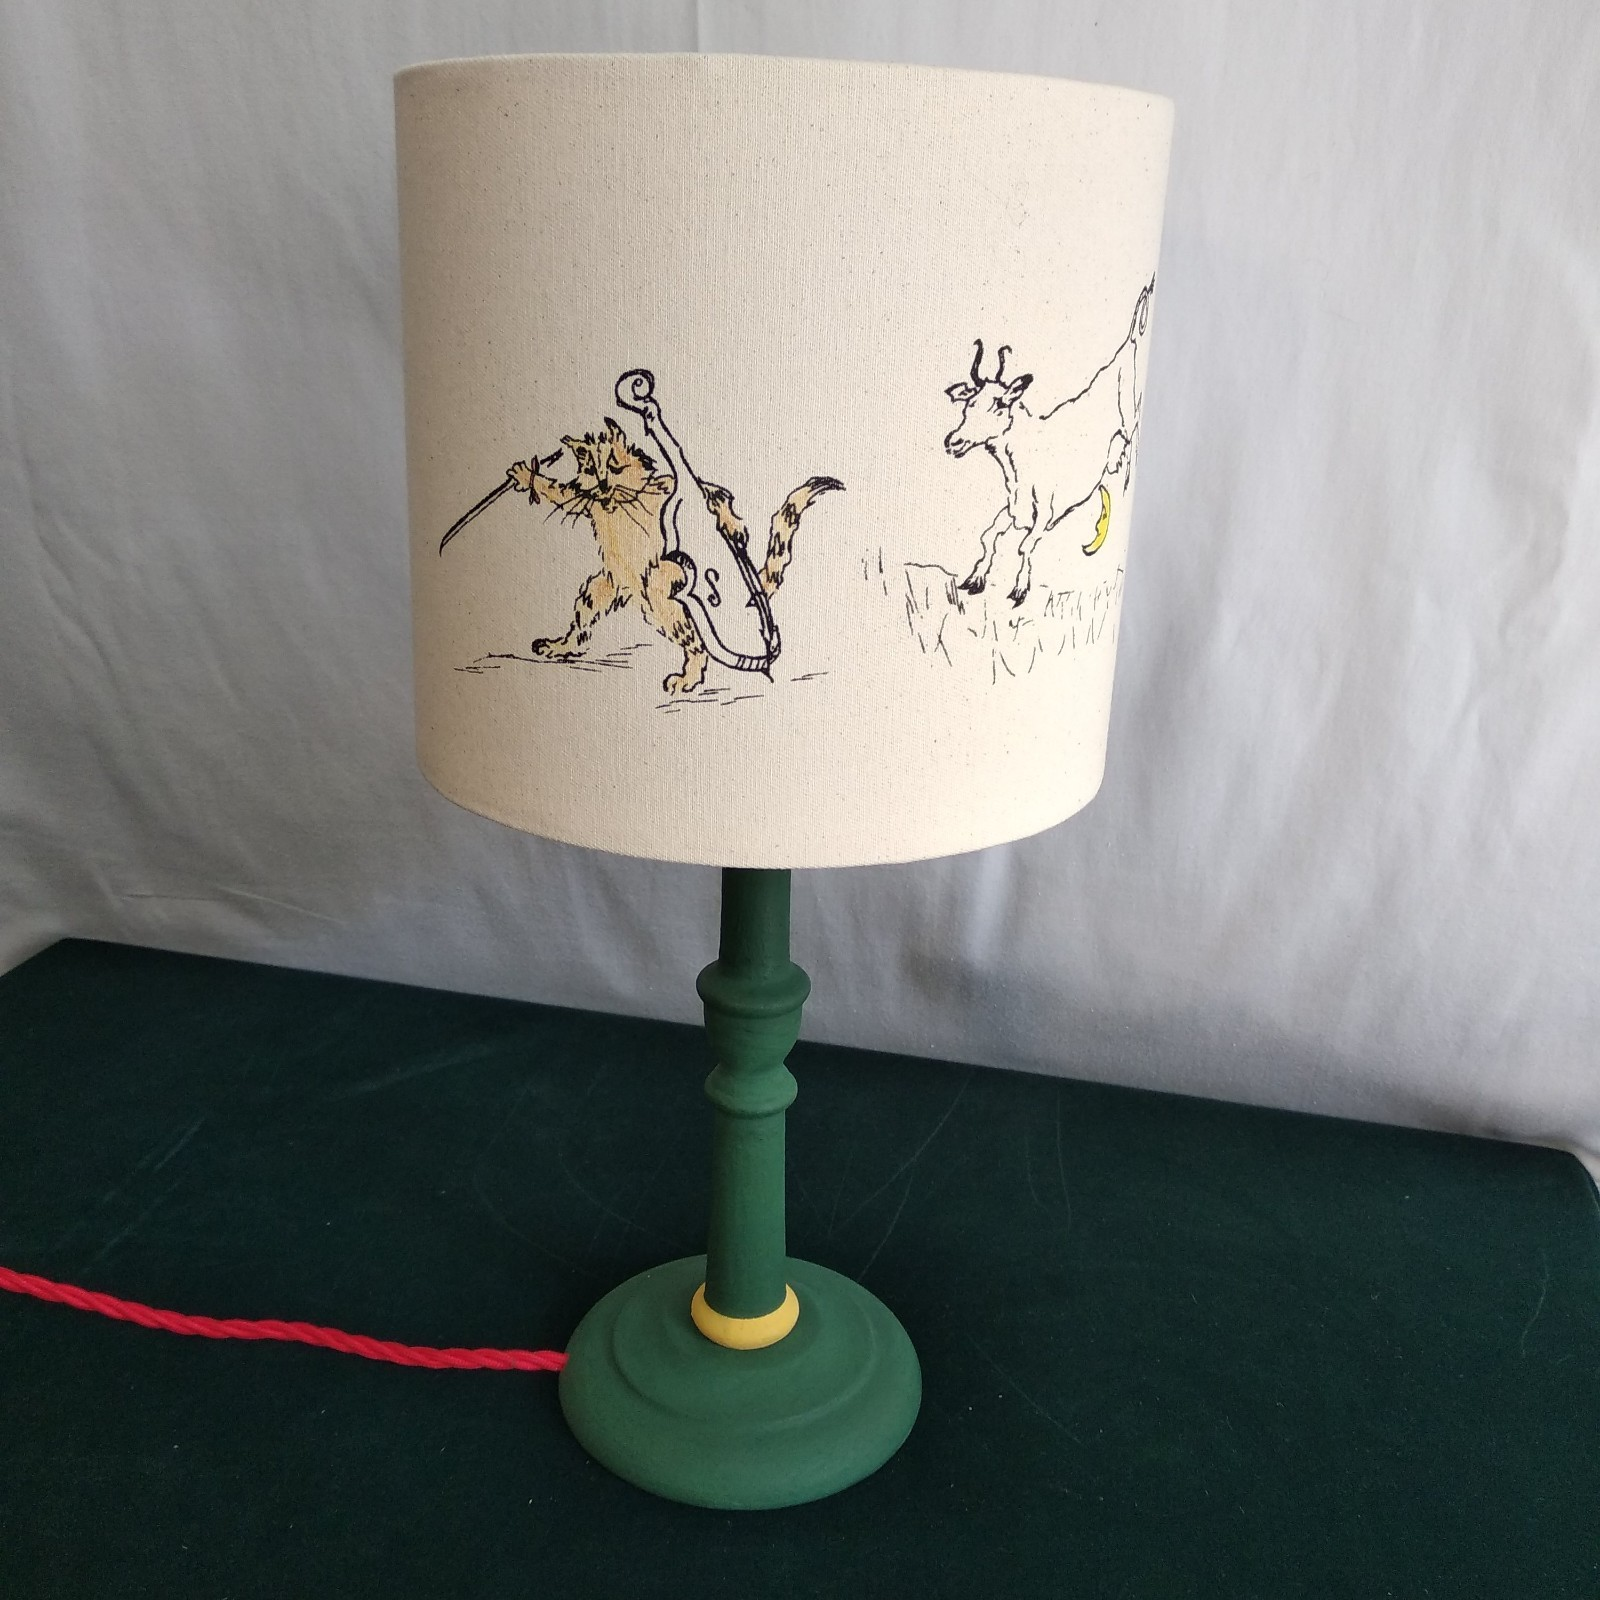 20 cm Lampshade The Cat and The Fiddle